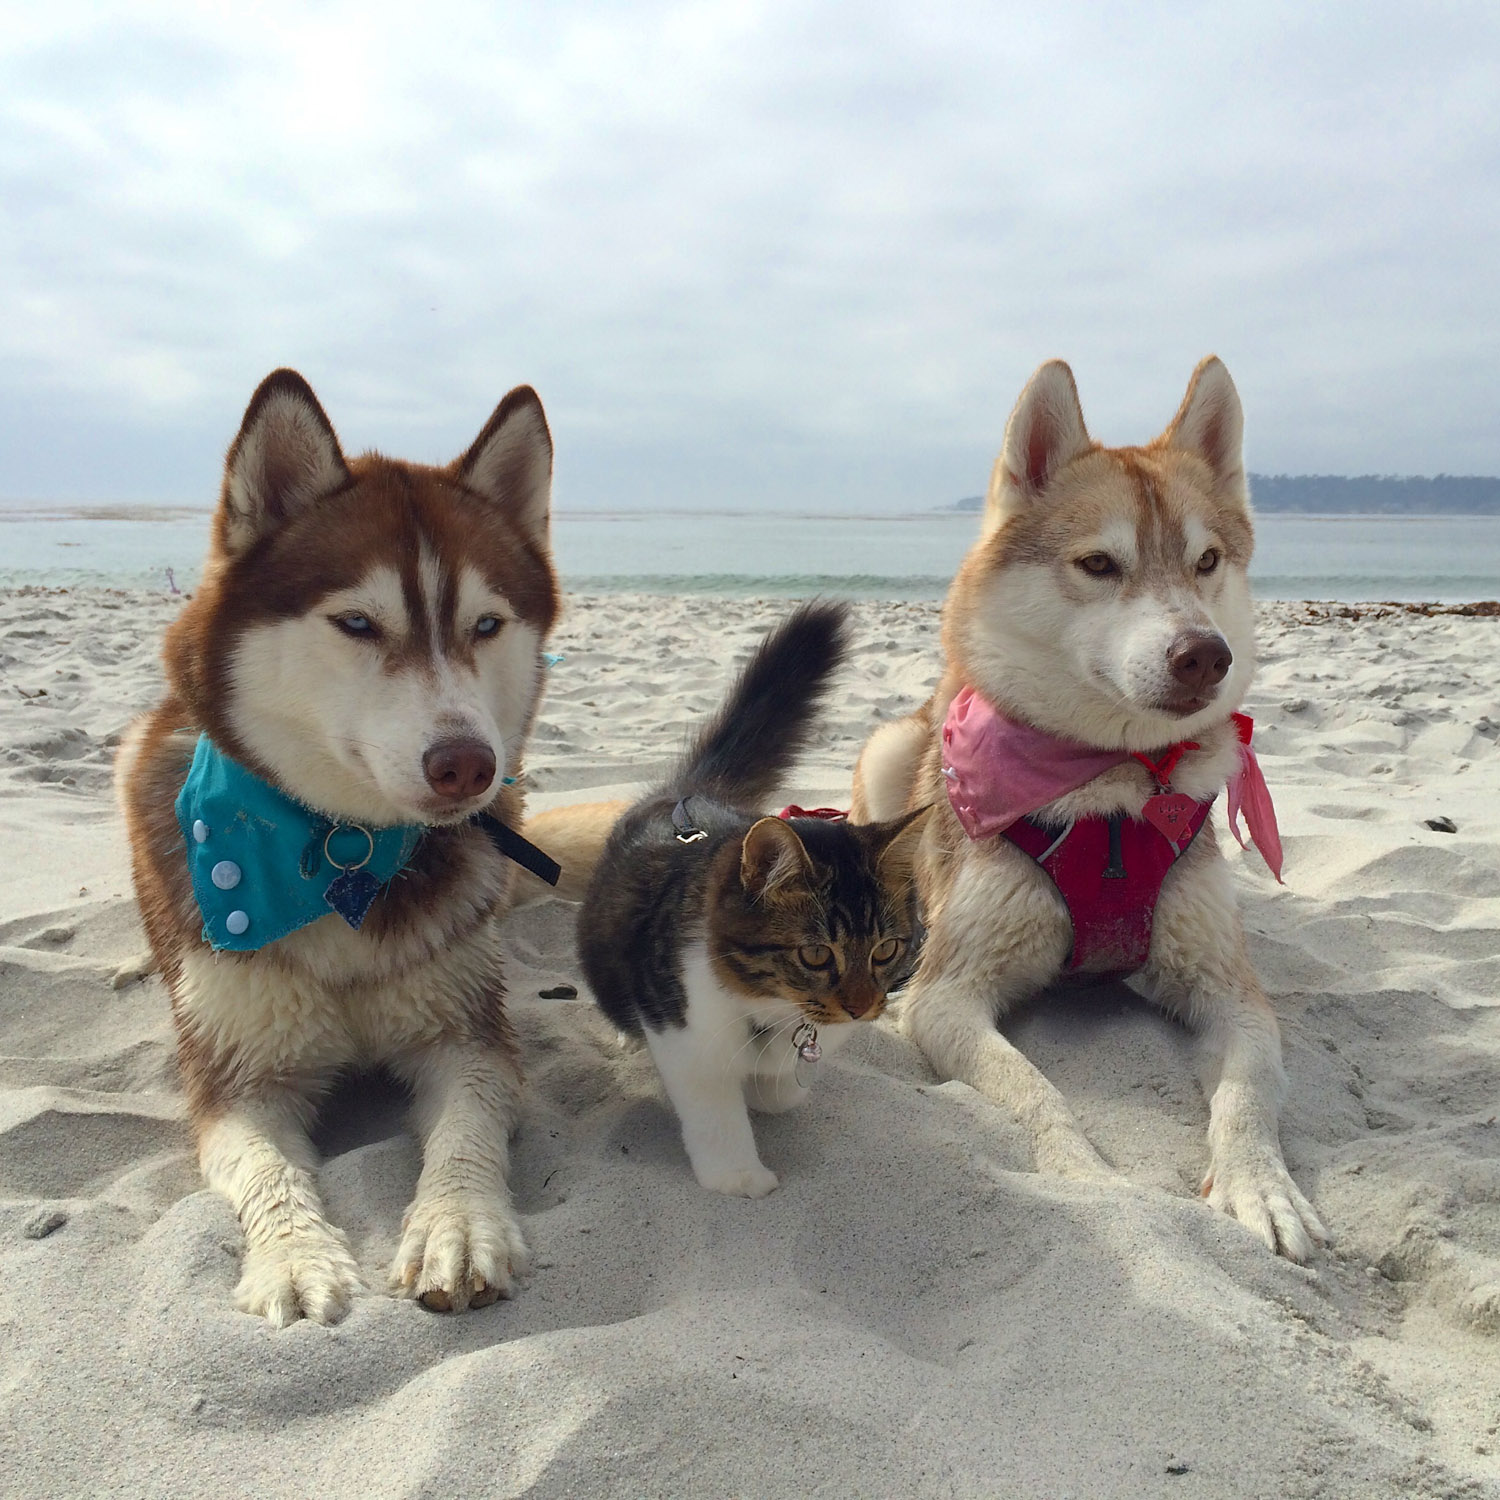 Cat Dog Walking Together